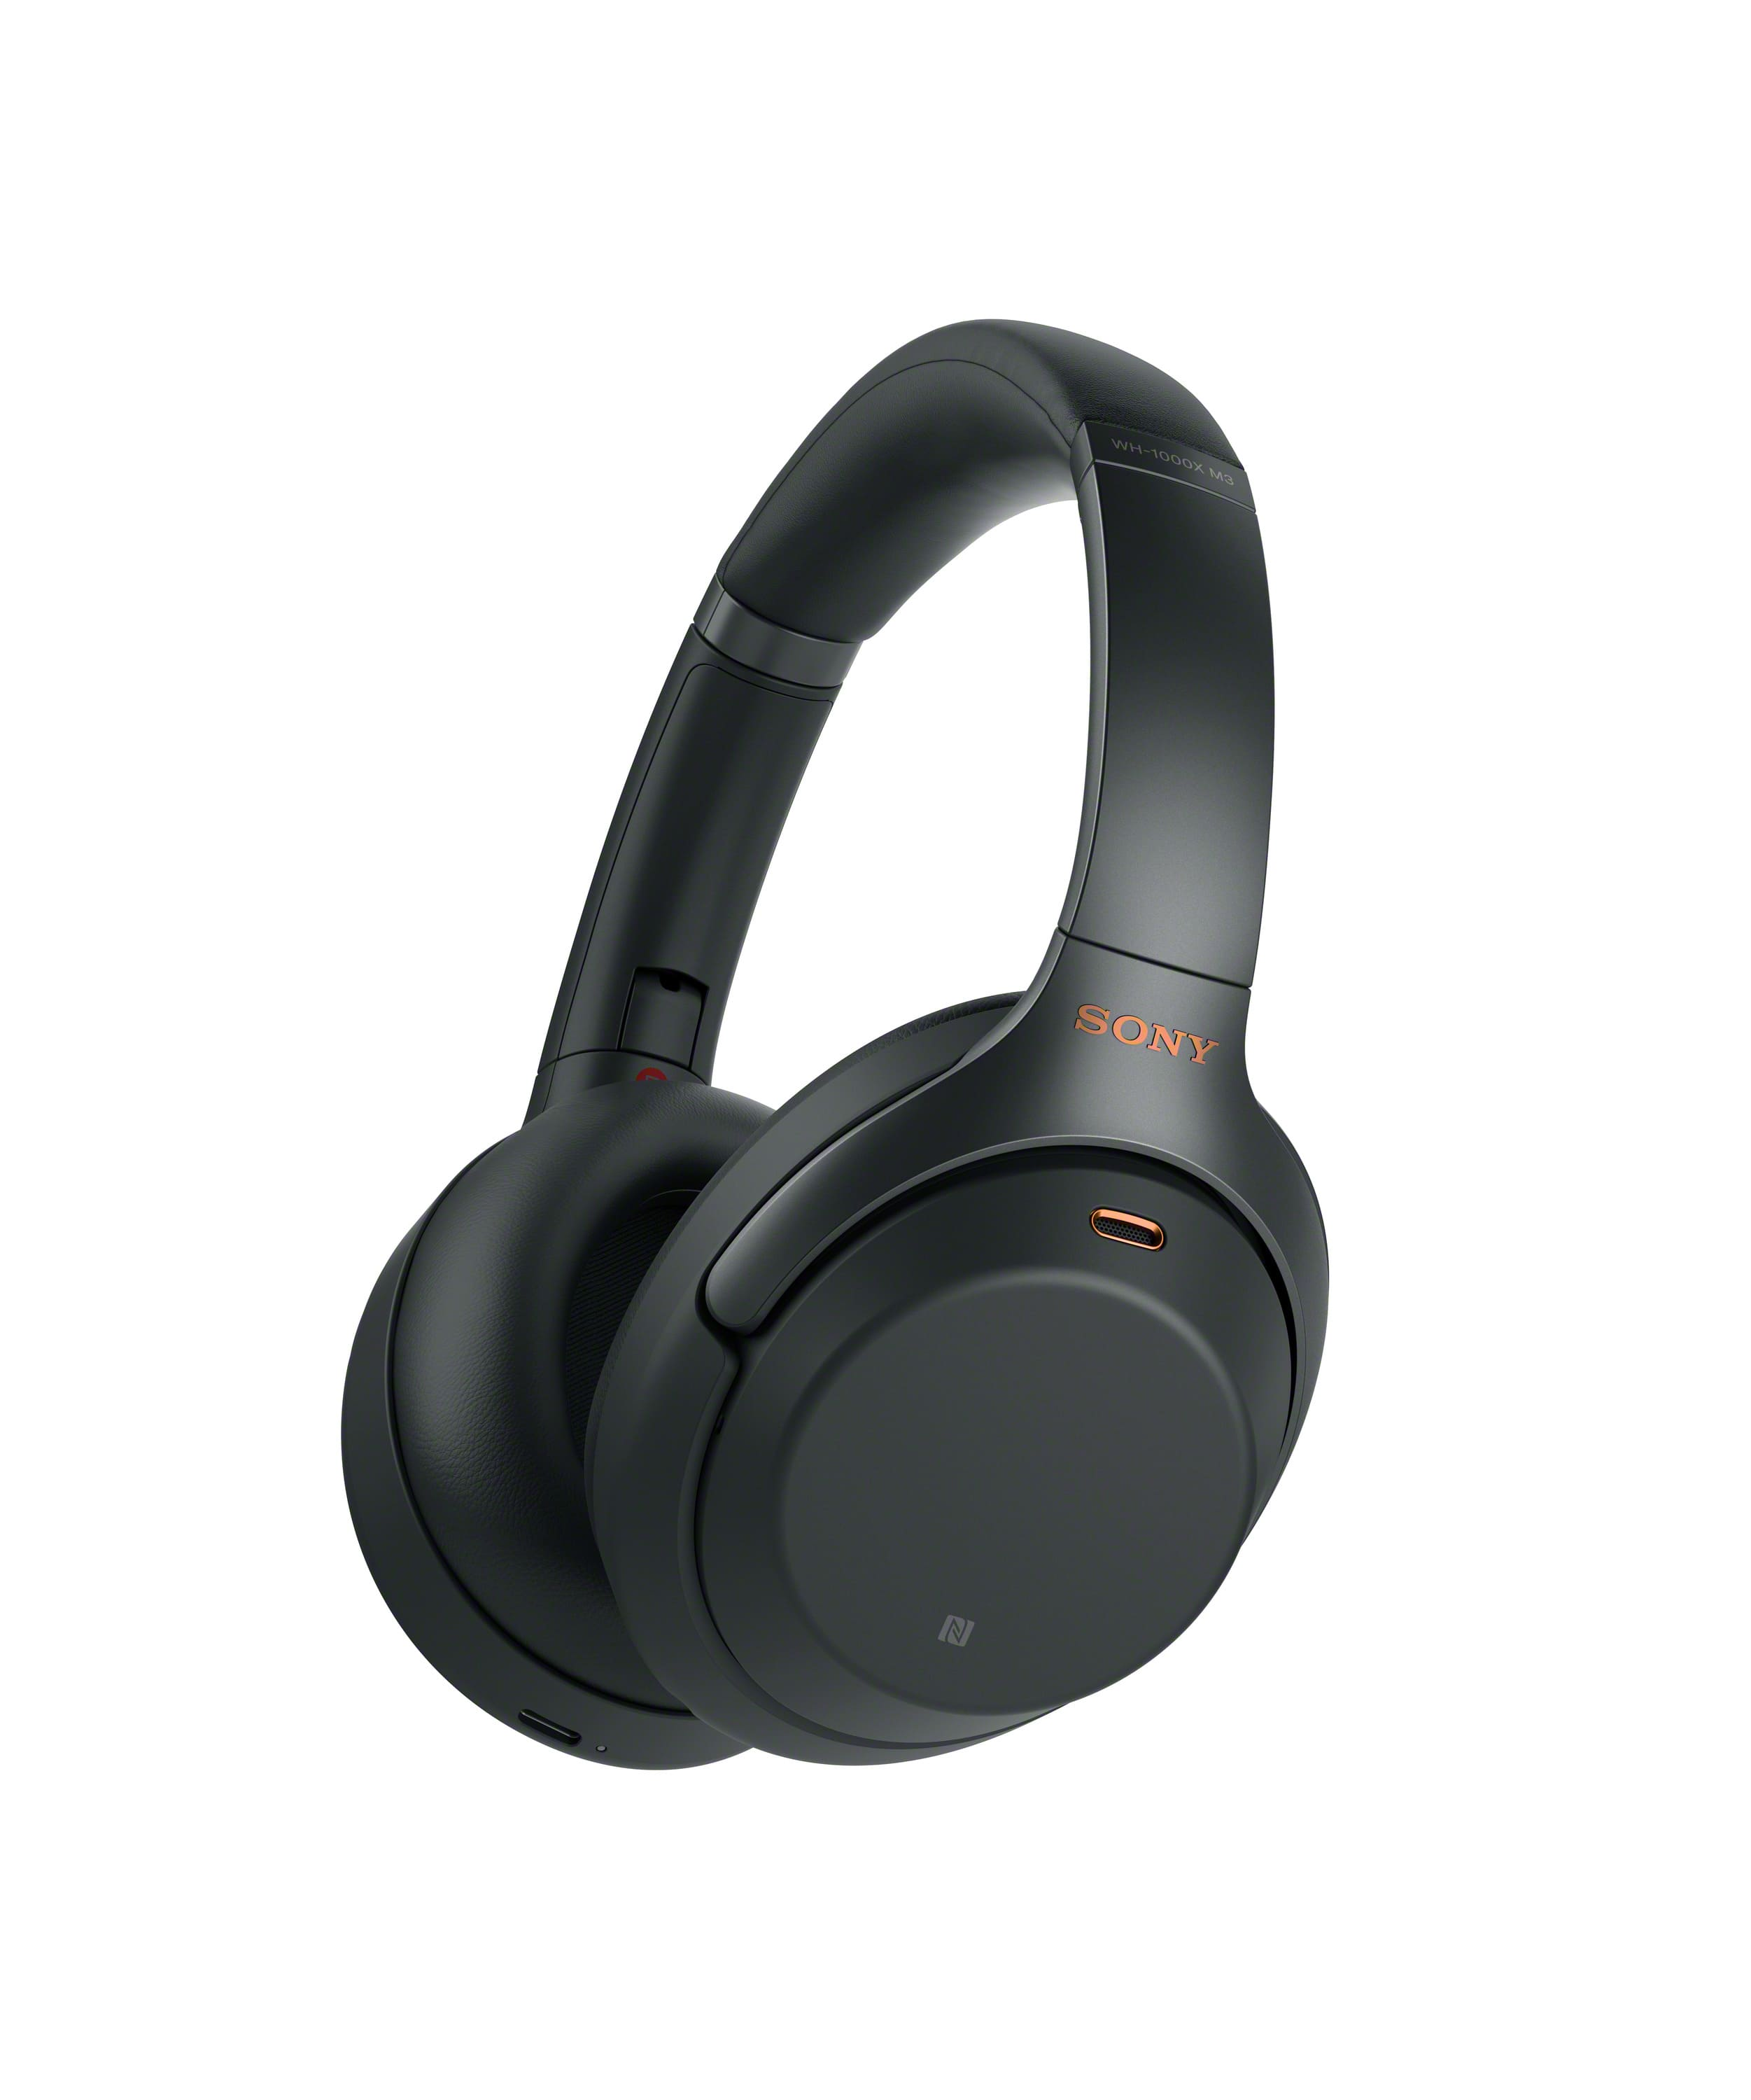 AAFES/Military - Sony WH-1000XM3 - $219 + Free Shipping, No Tax $219